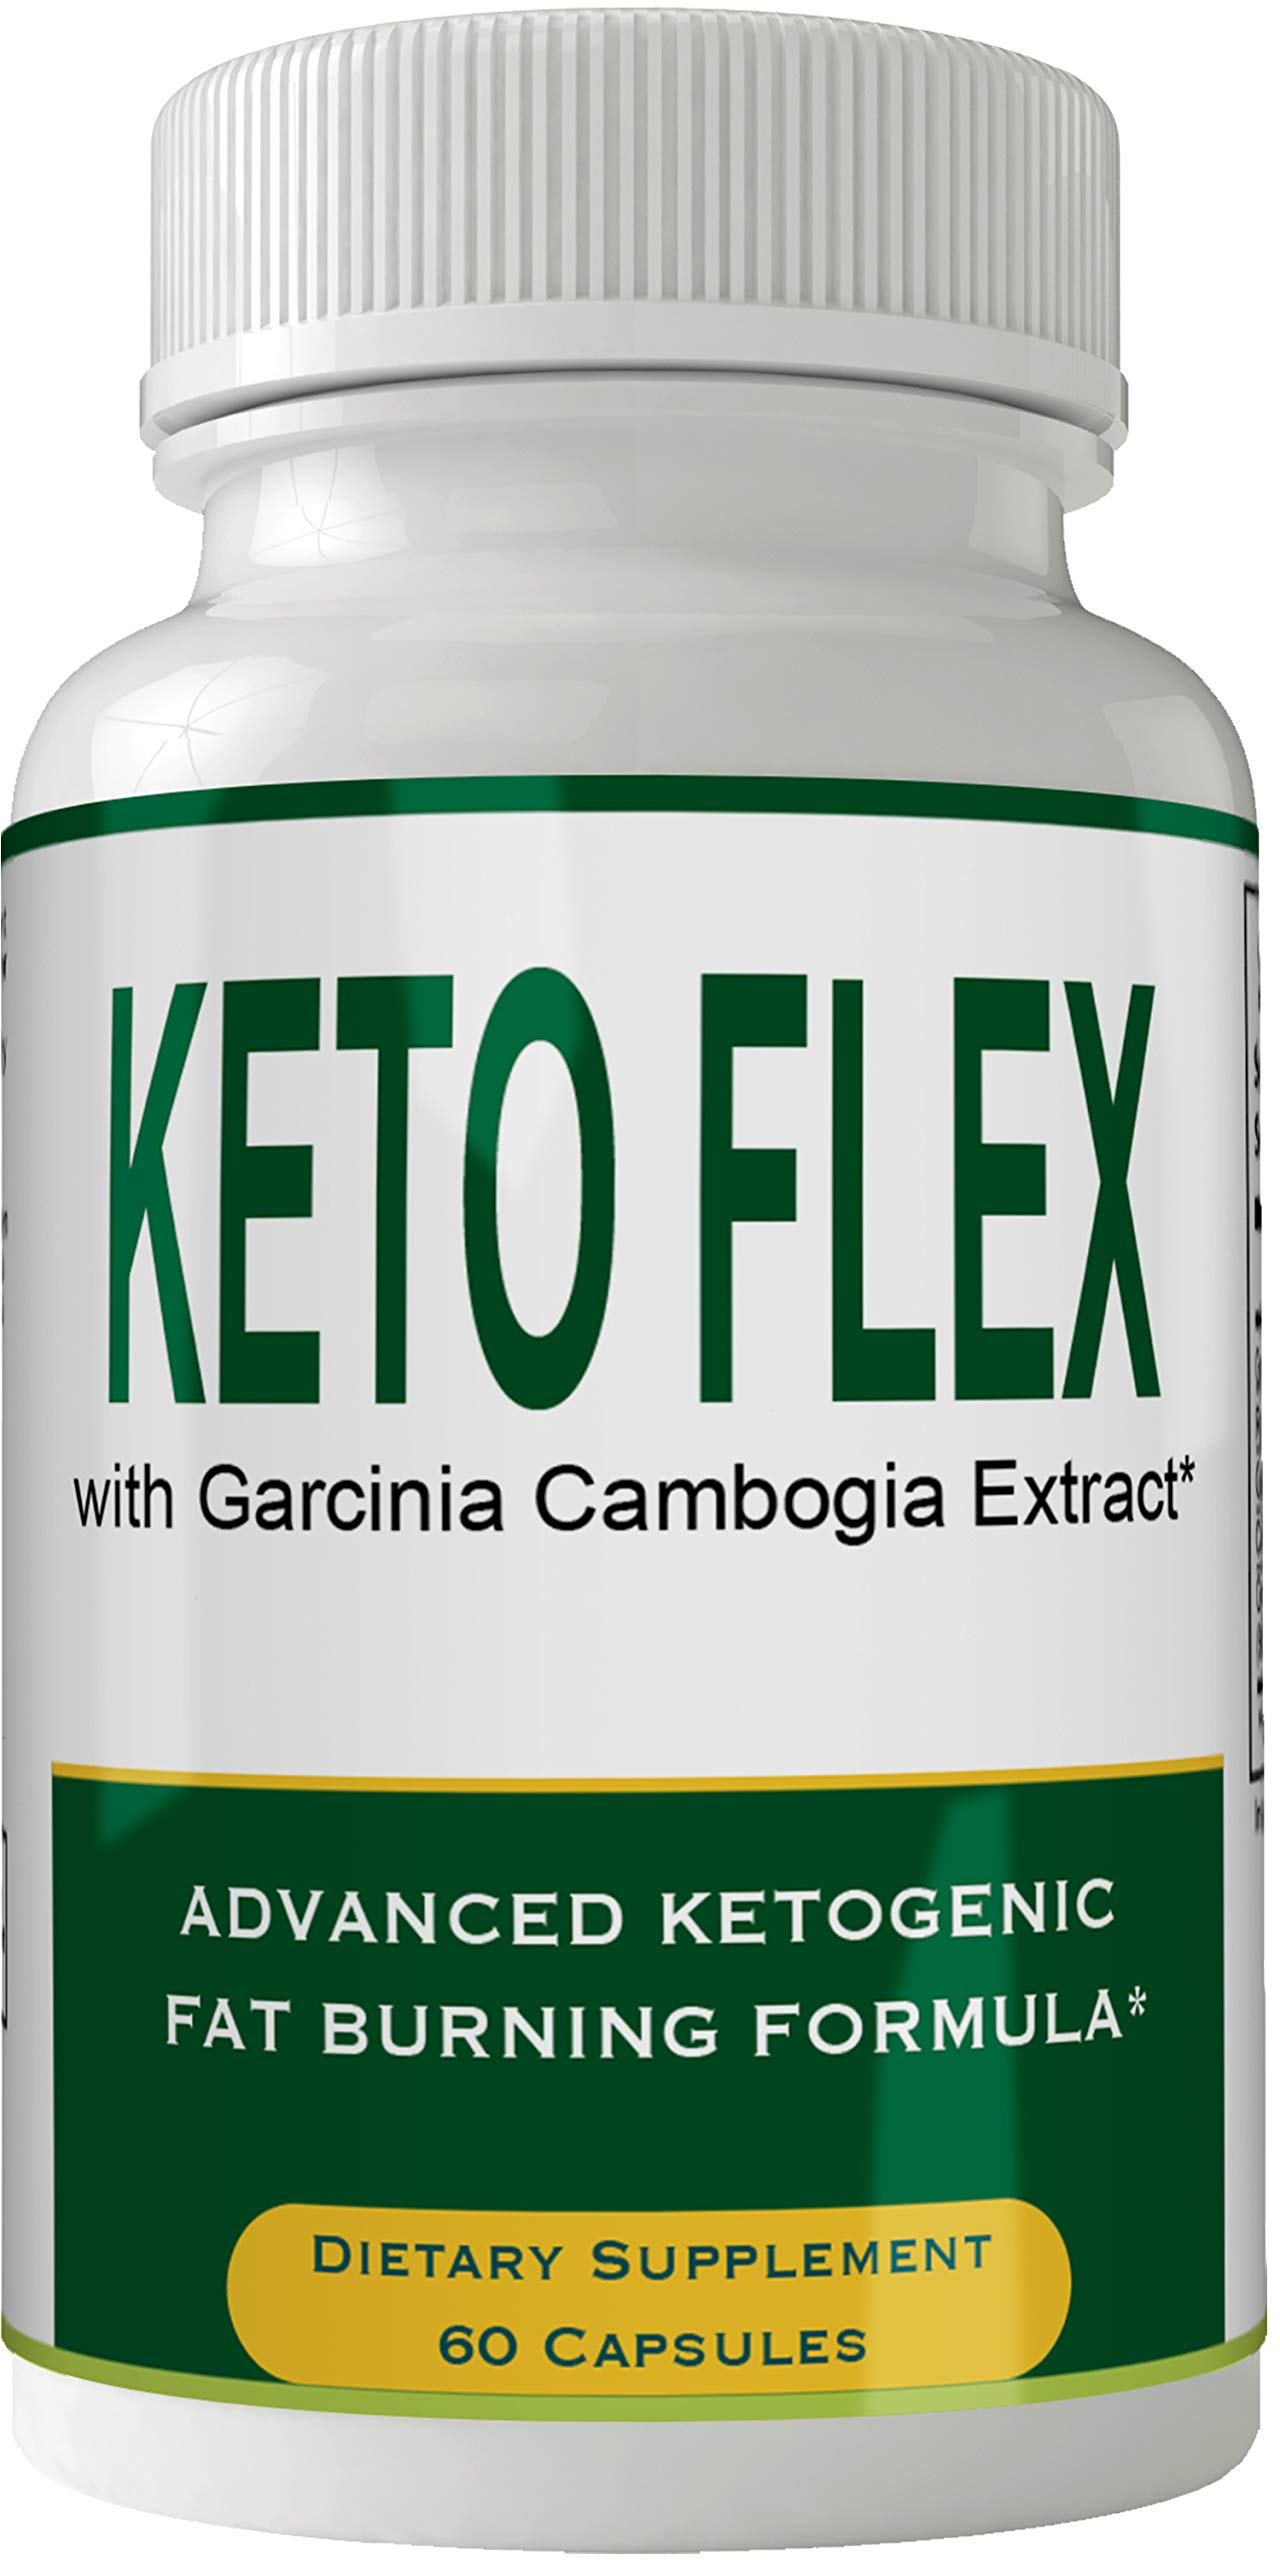 Keto Flex Weight Loss Pills Diet Capsules with Garcinia Cambogia, Weightloss Lean Fat Burner, Advanced Thermal Fat Loss Supplement for Women and Men